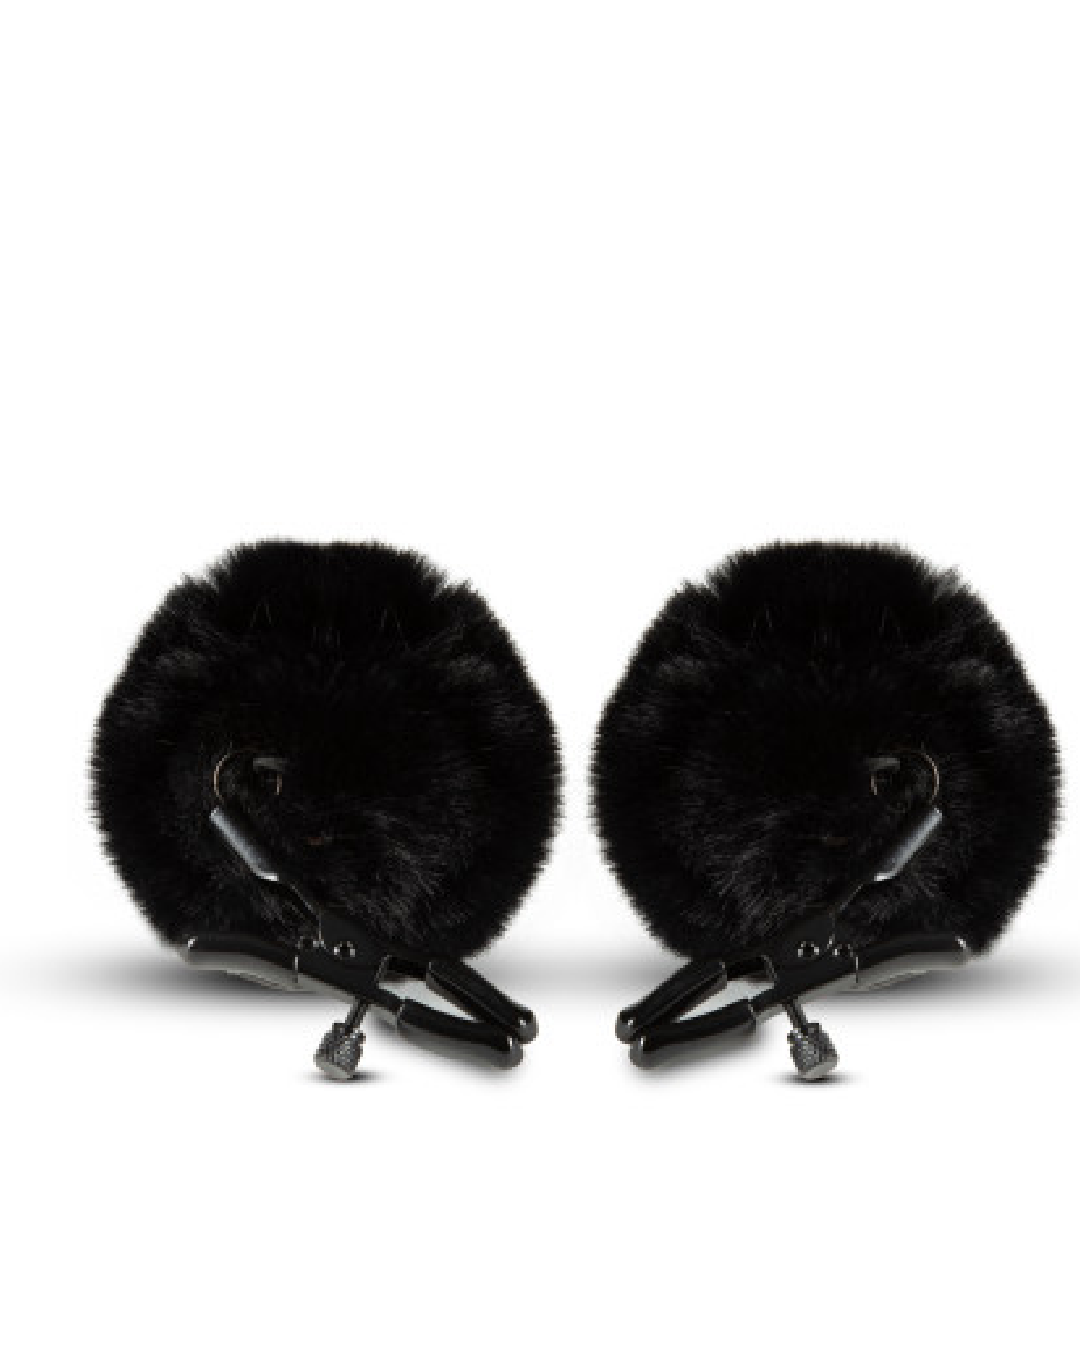 Noir Pom Nipple Clamps by Blush Novelties on white background